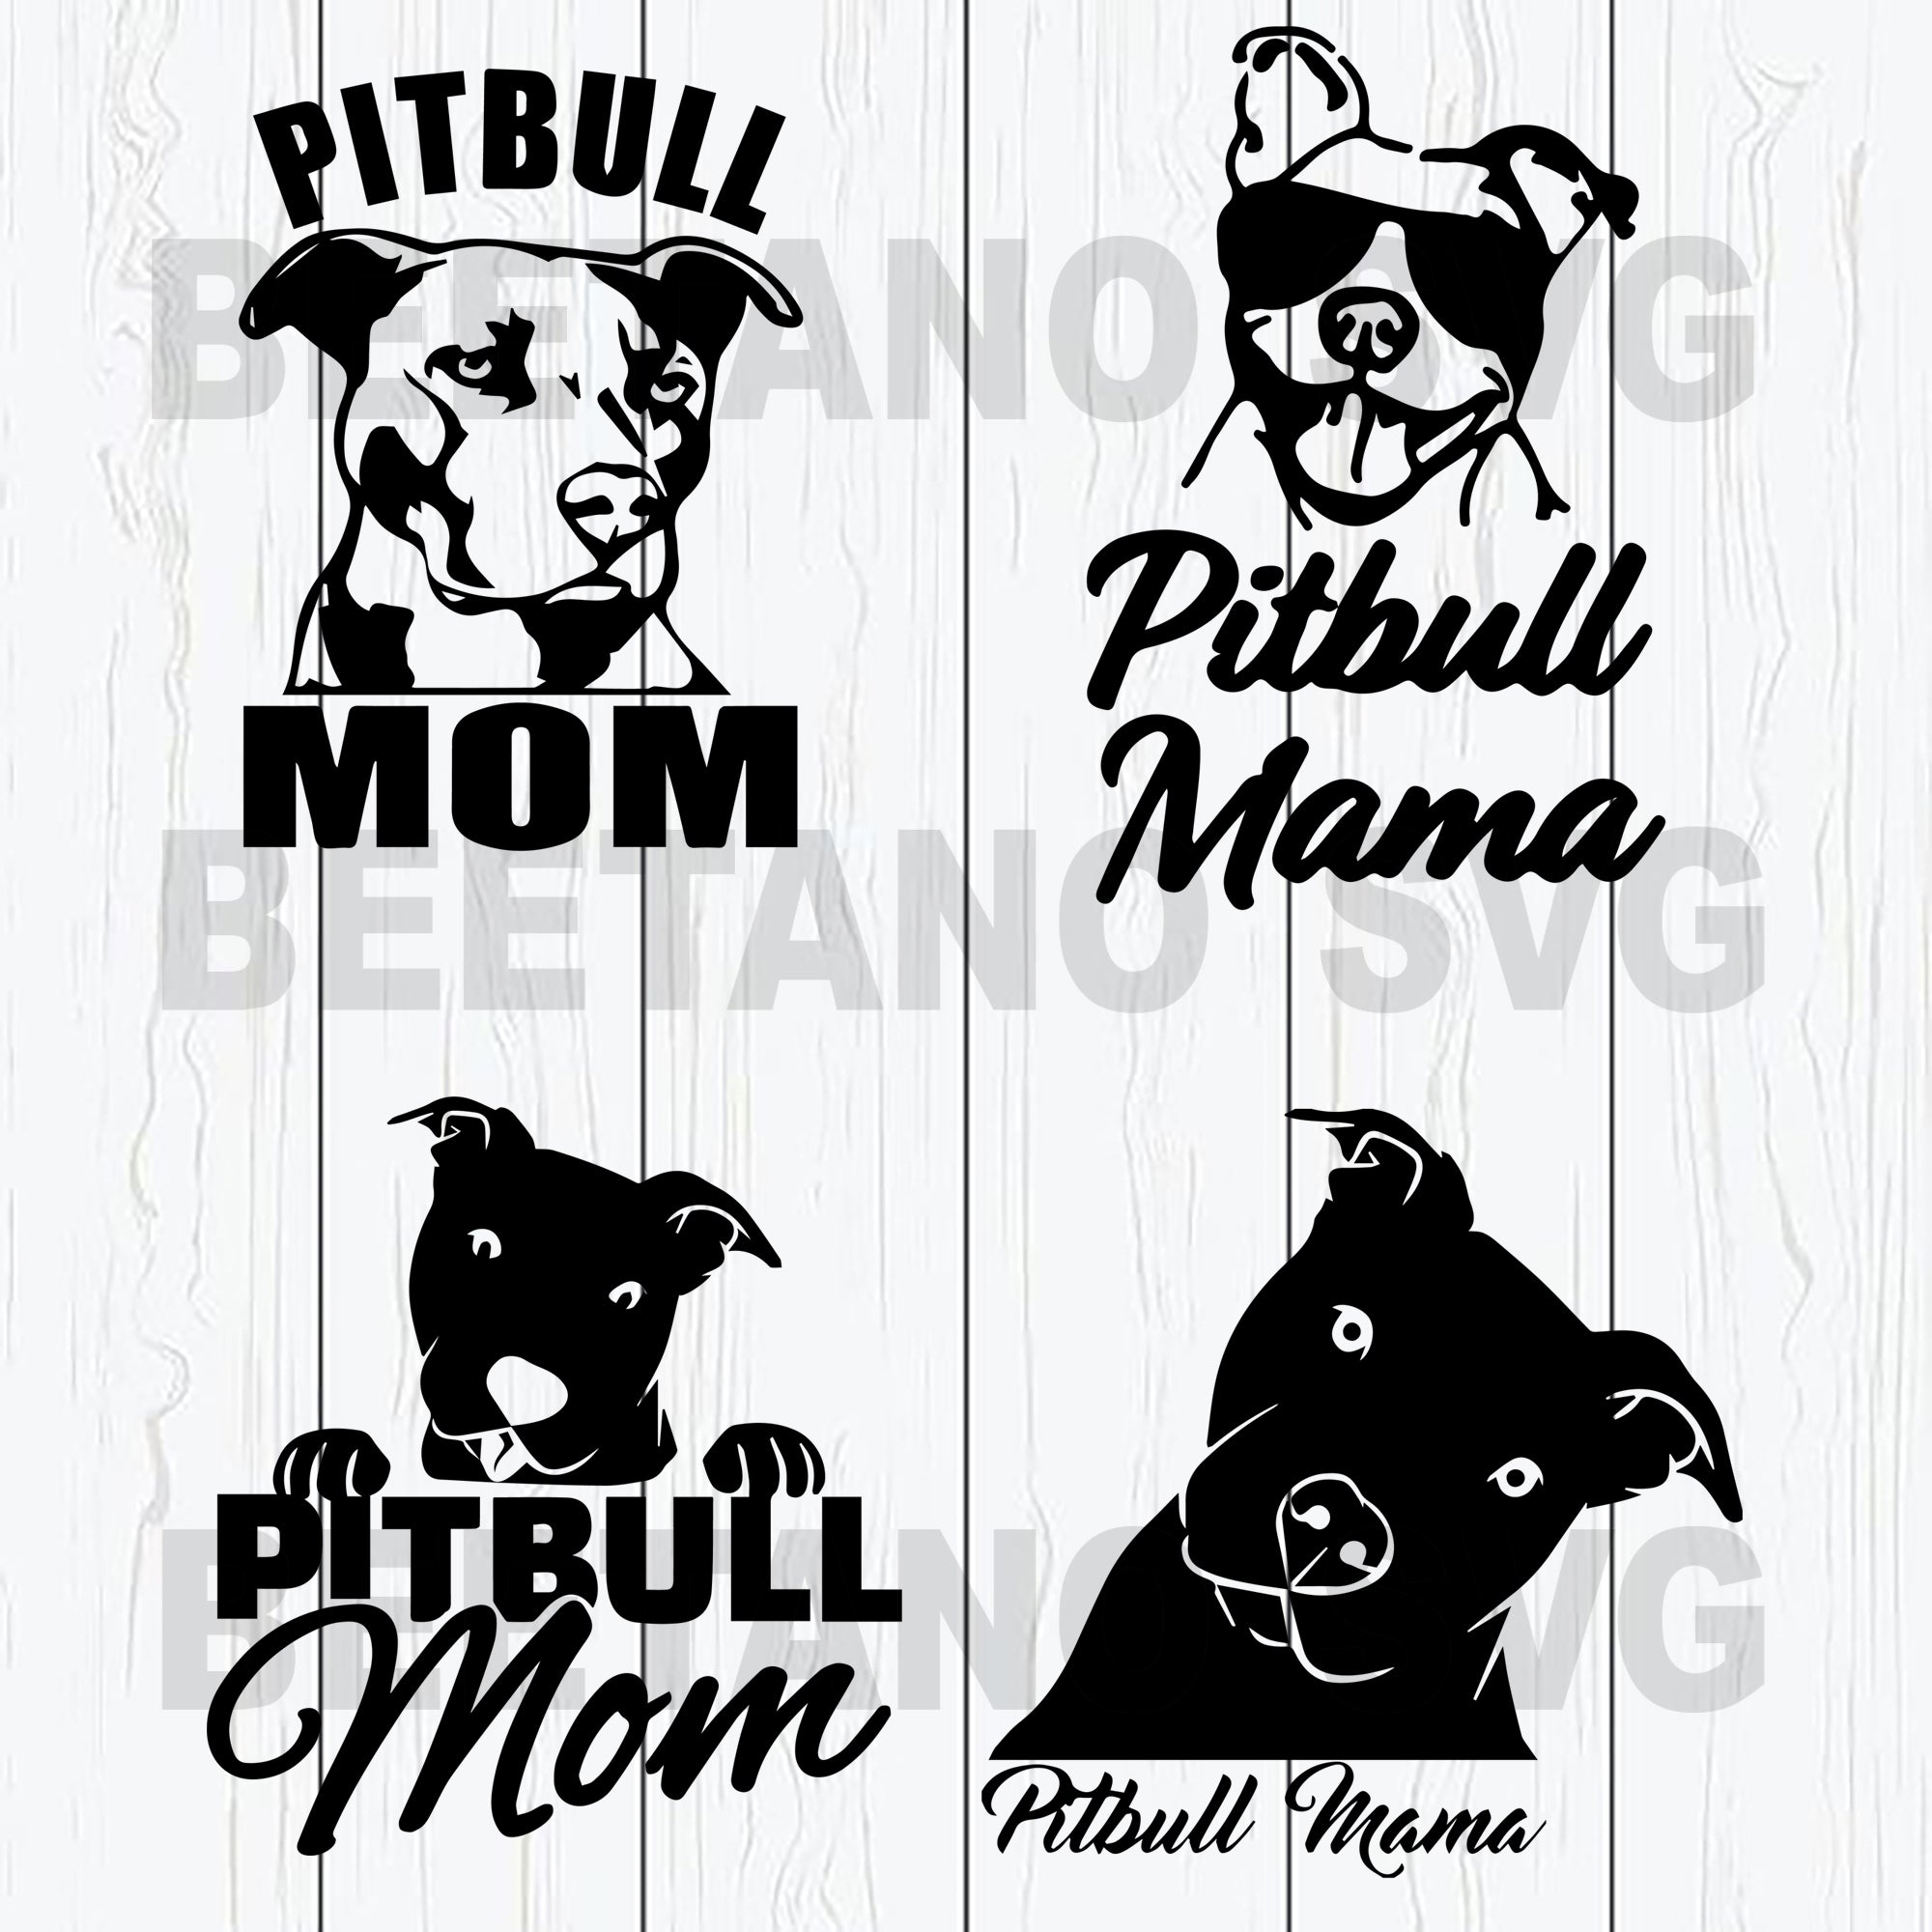 Pitbull Mom Svg Files, Pitbull Svg, Mother Svg, Dog Svg, Pitbull Mom Svg For Instant Download